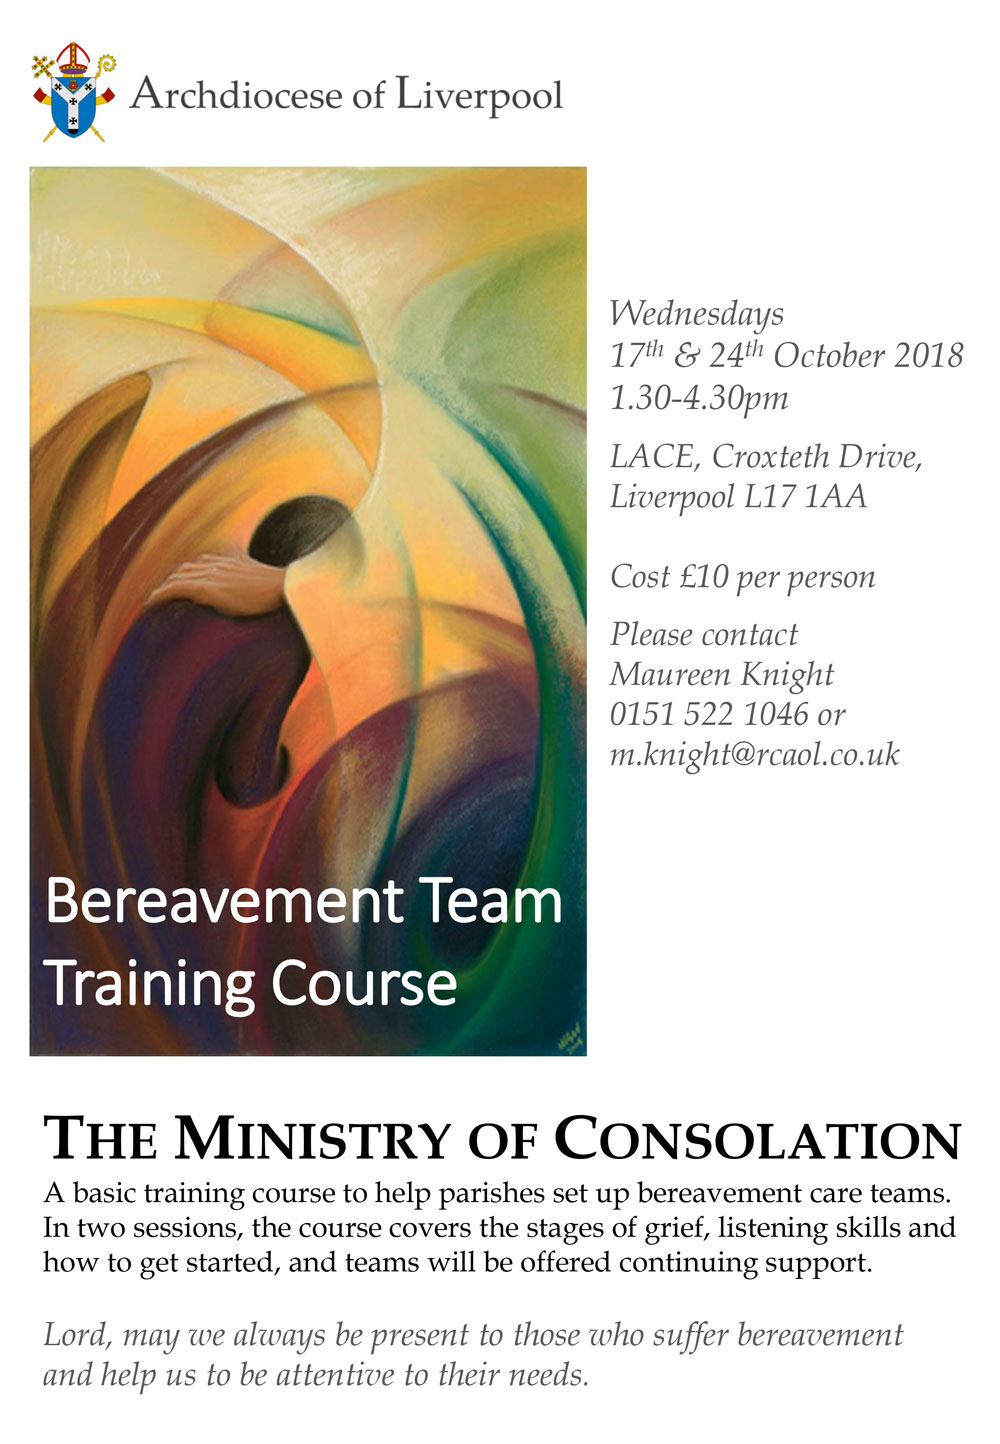 Bereavement Team Training Course